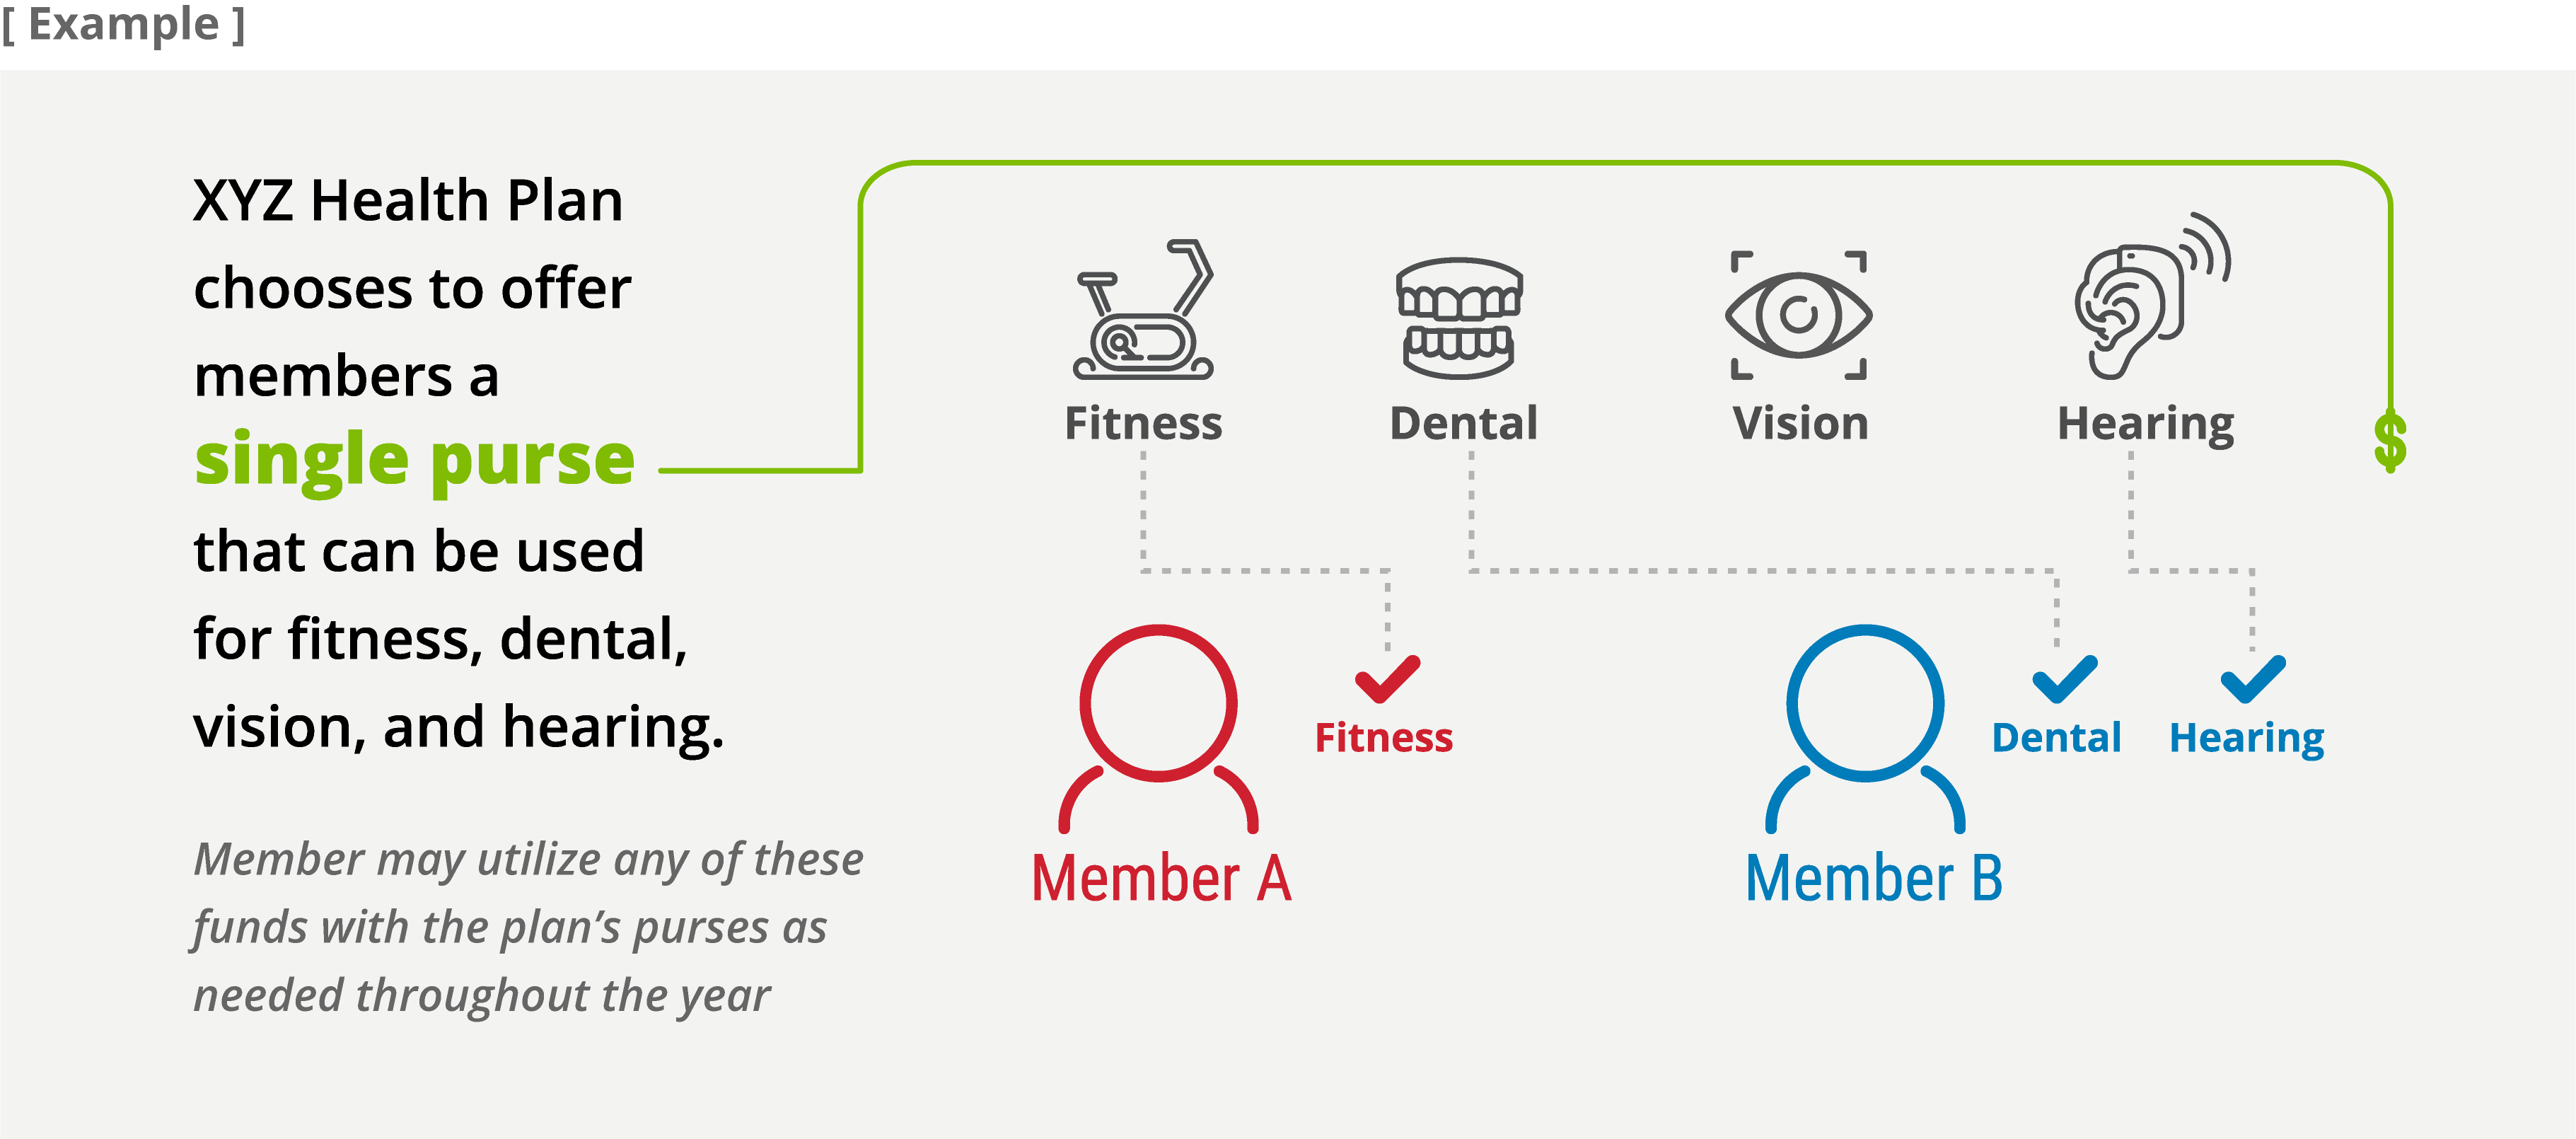 Example- XYZ Health Plan chooses to offer members a single purse that can be used for fitness, dental, vision, and hearing.